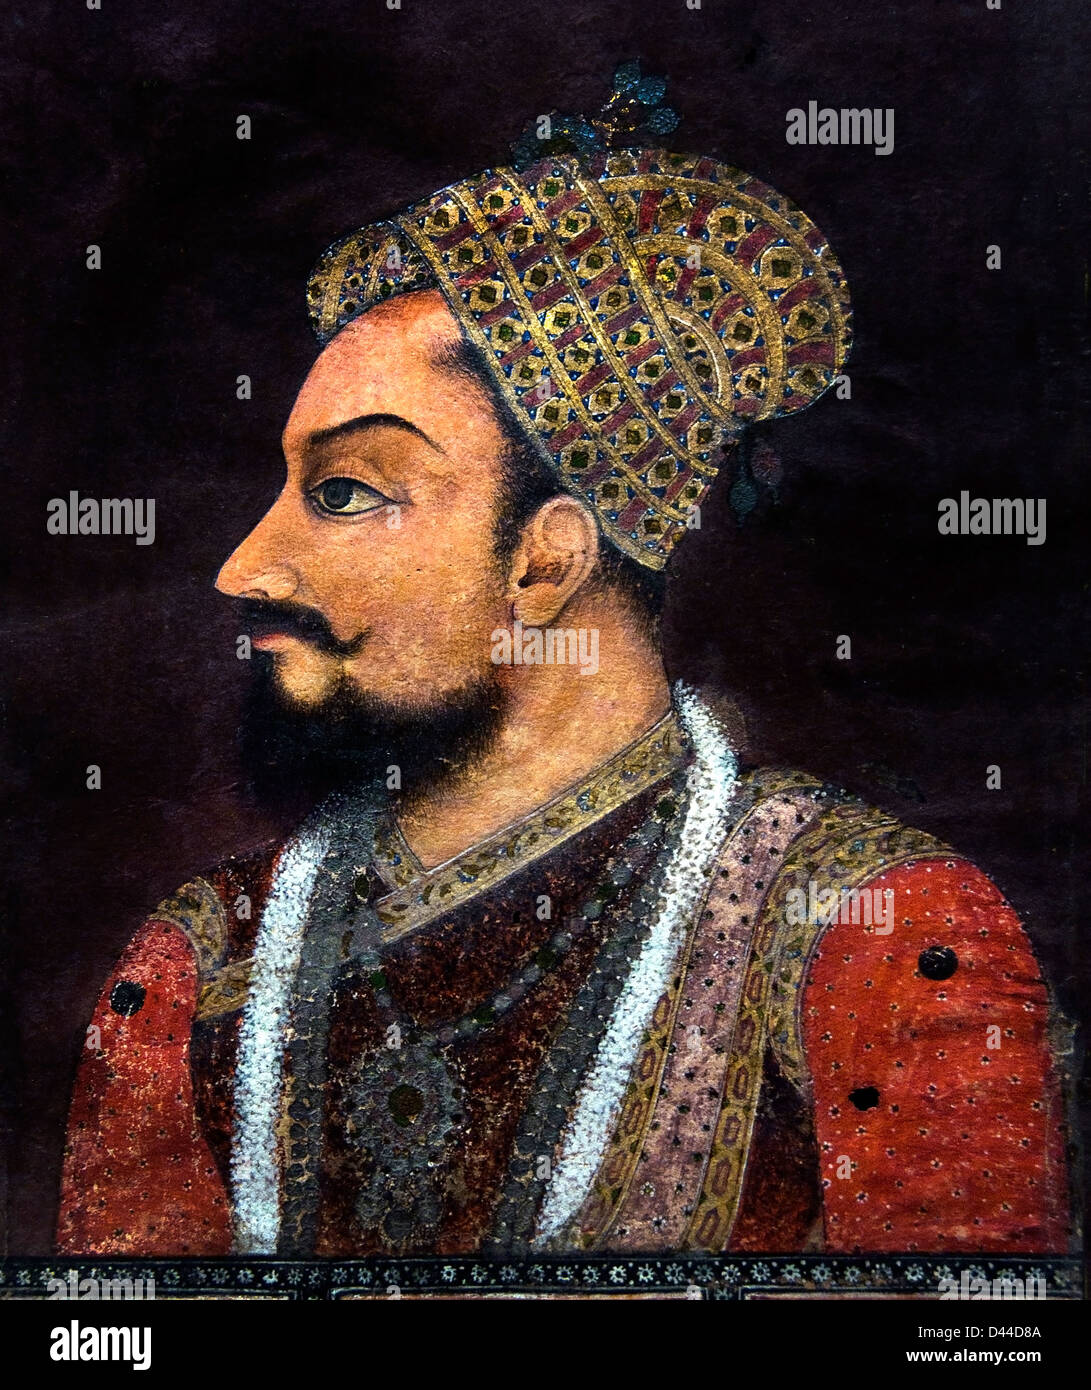 Muhammad Adil Shah fourth ruler of the Sur dynasty medieval Afghan dynasty of northern India17th Cent Decanni Bijapur - Stock Image